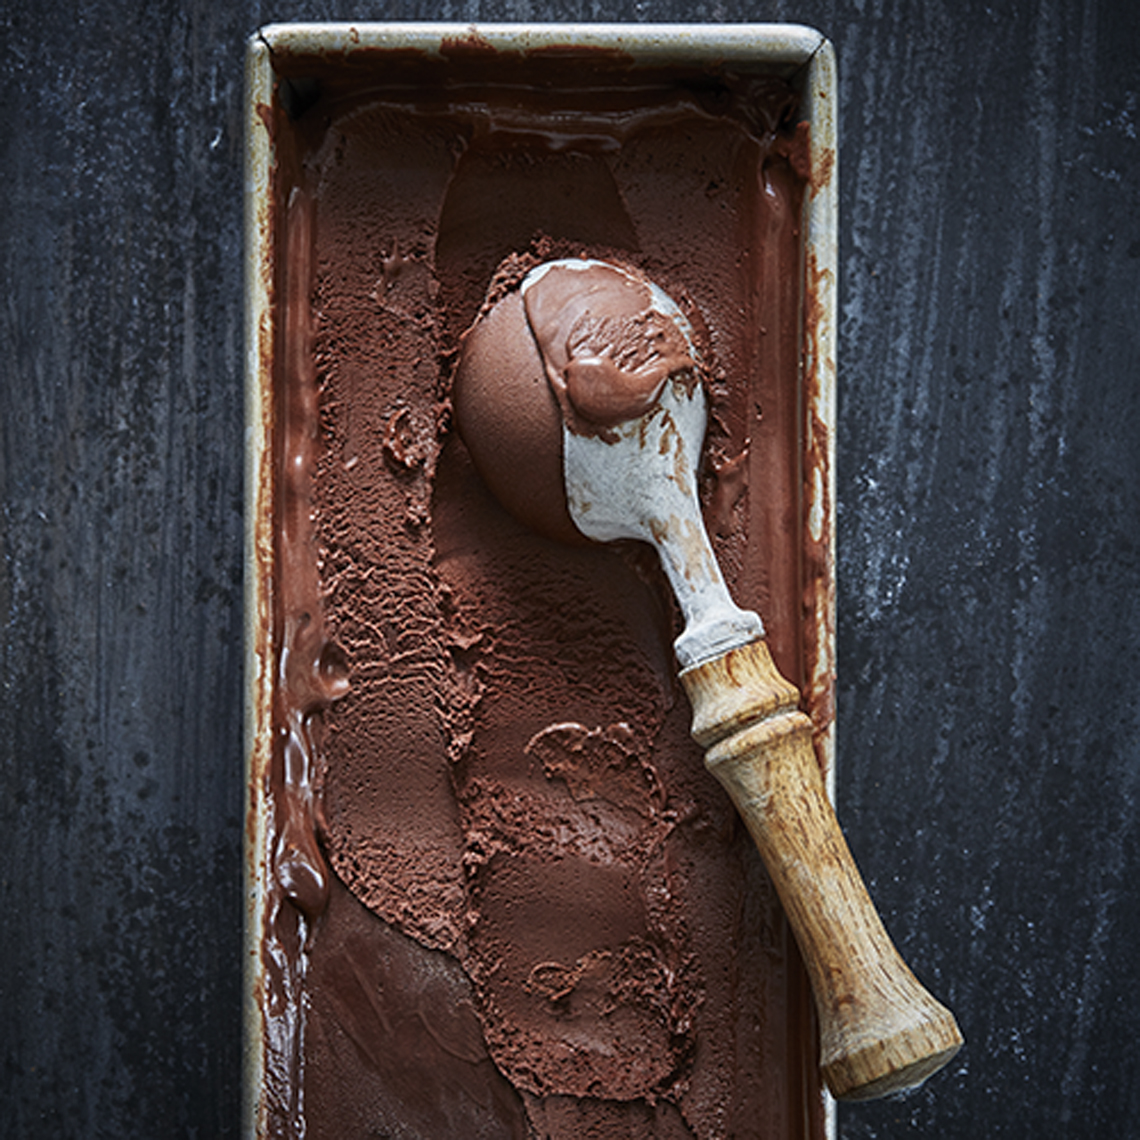 AlanCampbellPhotography, ice cream shot from Season Cookbook